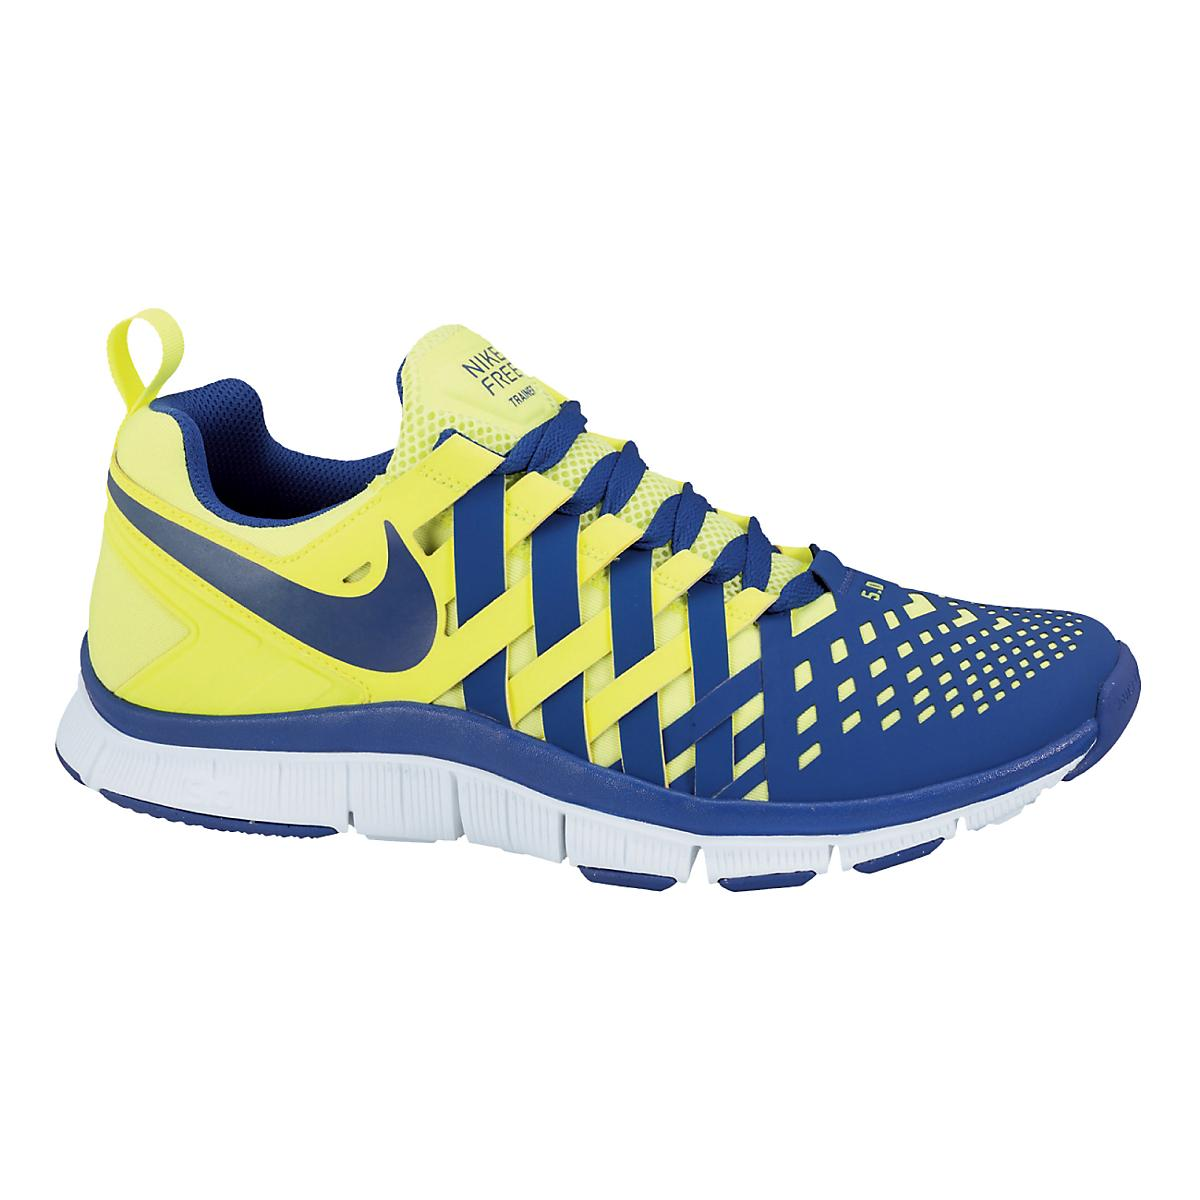 8d72efe68c19 Mens Nike Free Trainer 5.0 Cross Training Shoe at Road Runner Sports